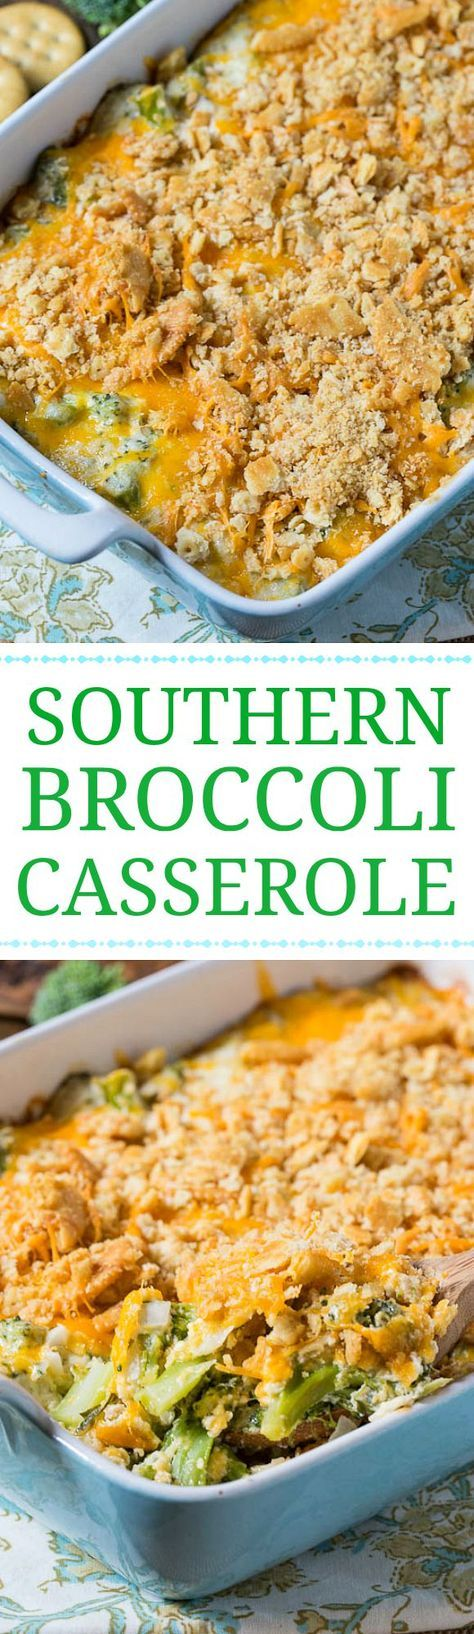 984 best southern cooking images on pinterest salads side dishes broccoli casserole easy recipessoul food forumfinder Images